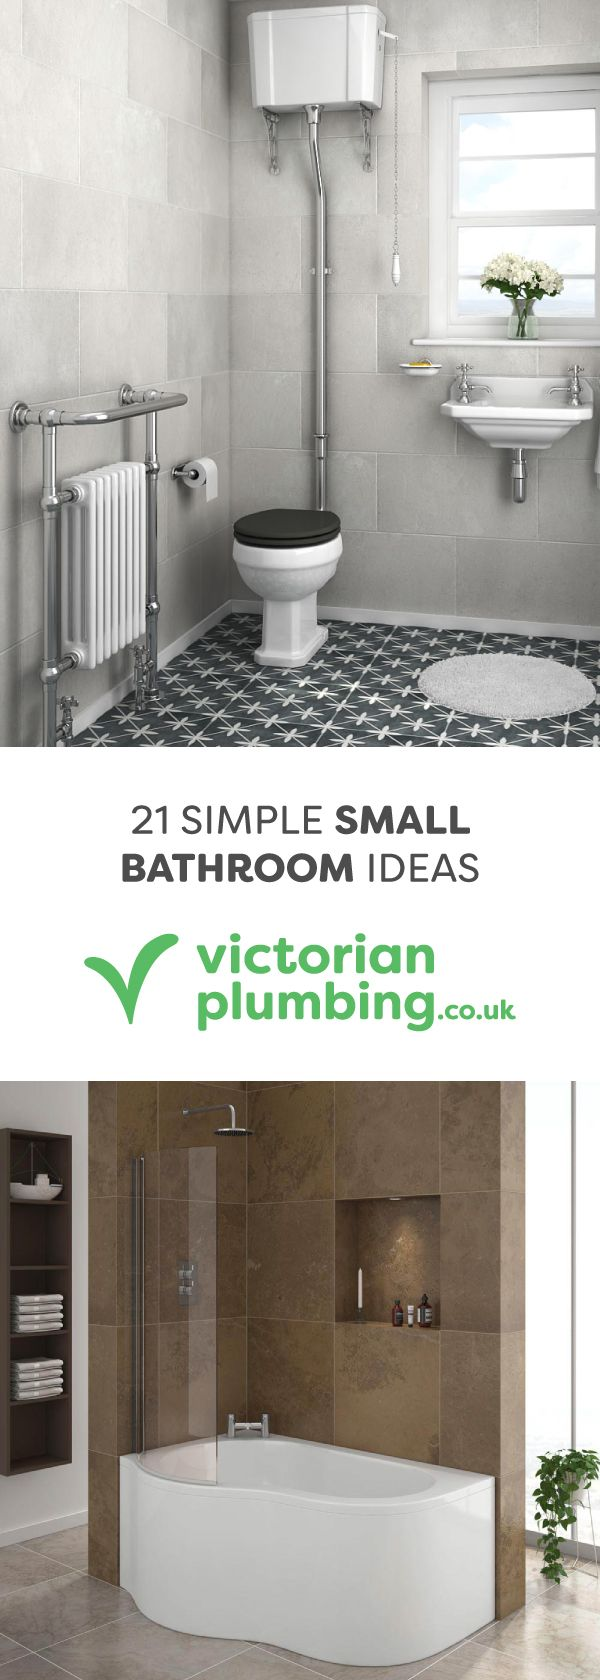 55 best small bathrooms images on pinterest bathroom ideas create something beautiful in your small space with these 21 simple small bathroom ideas from online